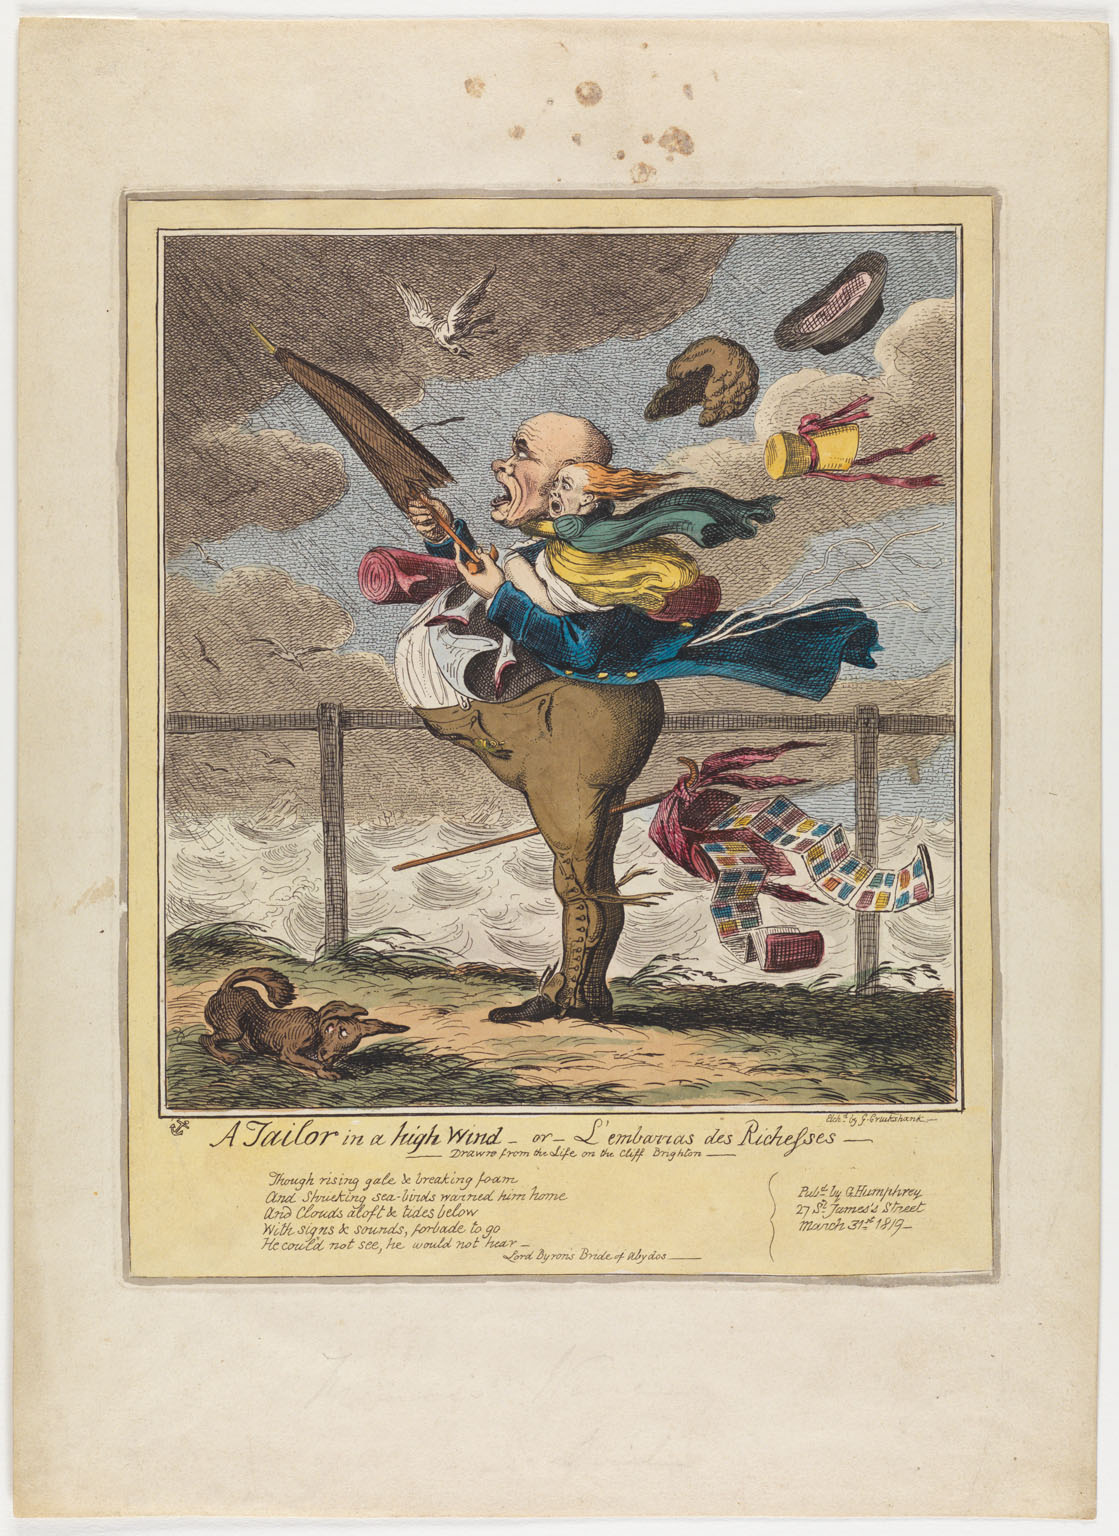 CLICK FOR LARGER IMAGE: A tailor in a high wind